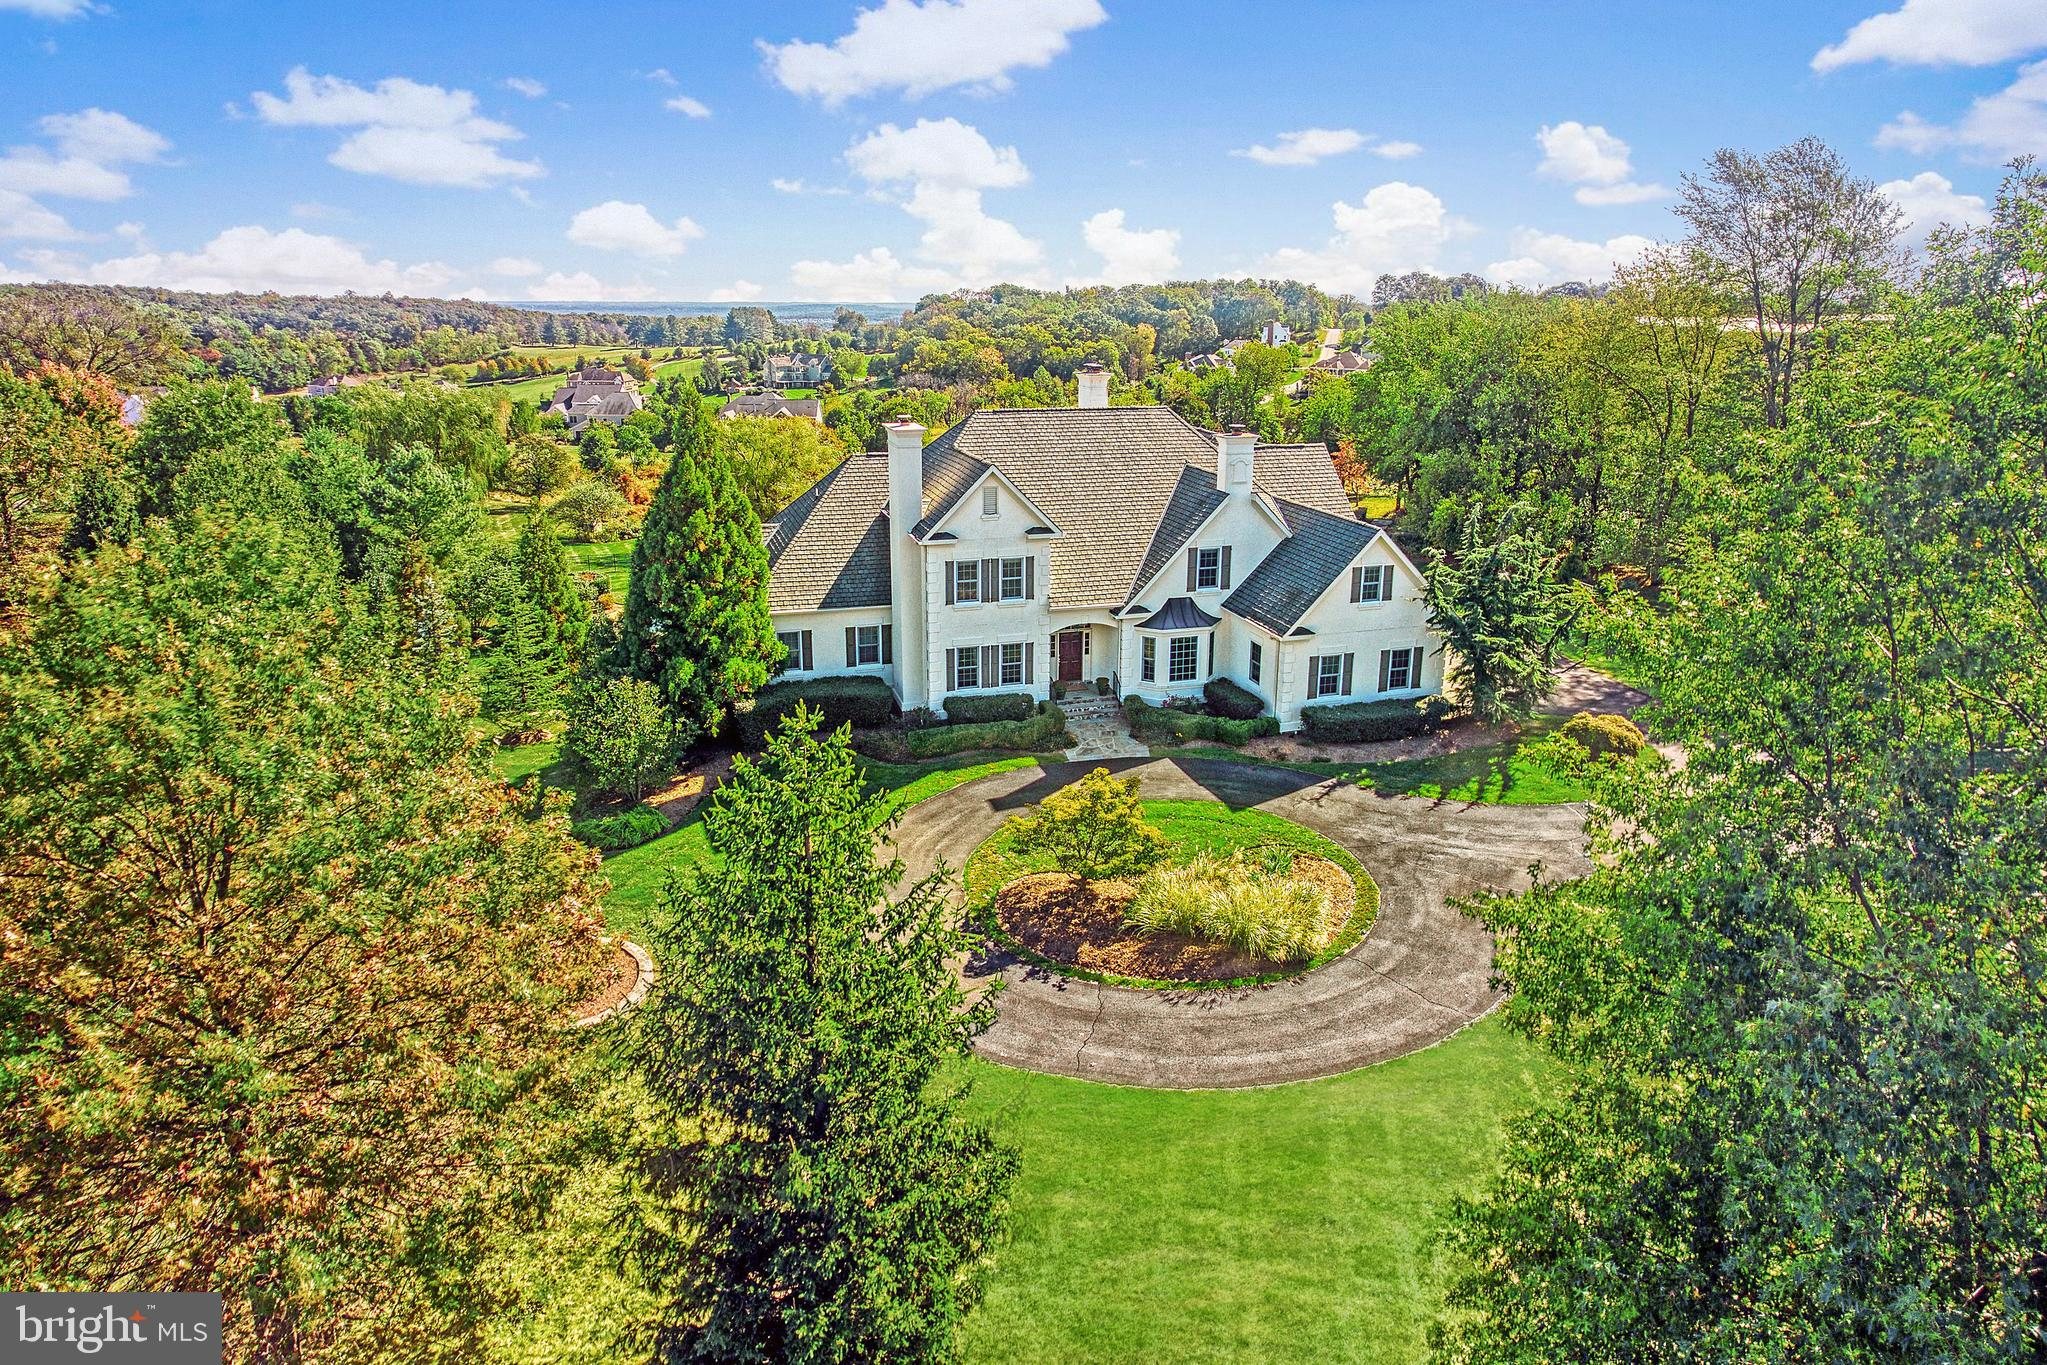 Perfectly sited on 3.16 manicured acres in Beacon Hill, this beautiful custom home offers both priva